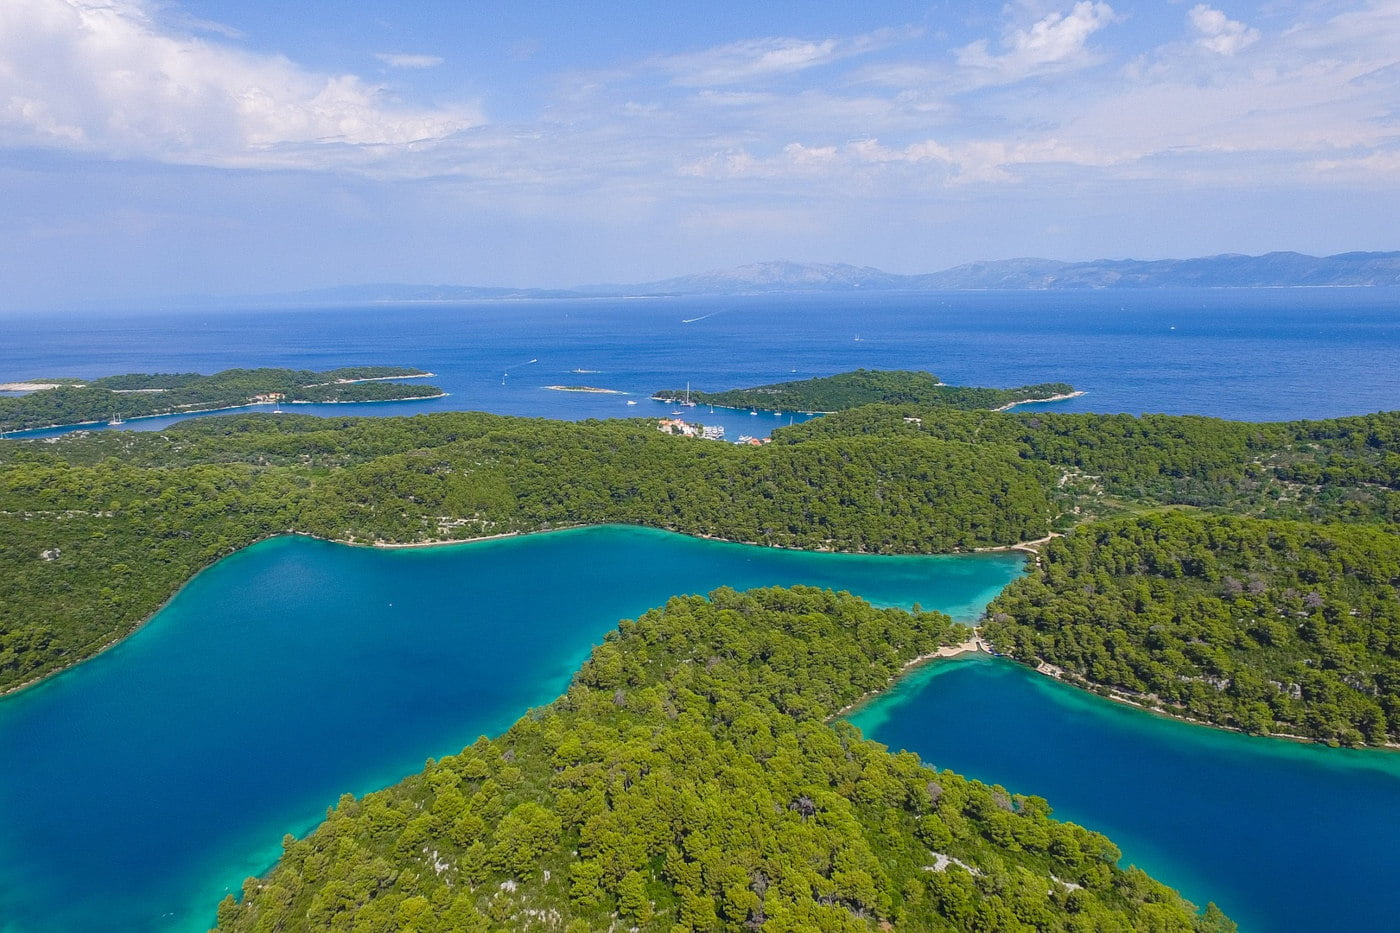 Green Nature Appeal of Mljet